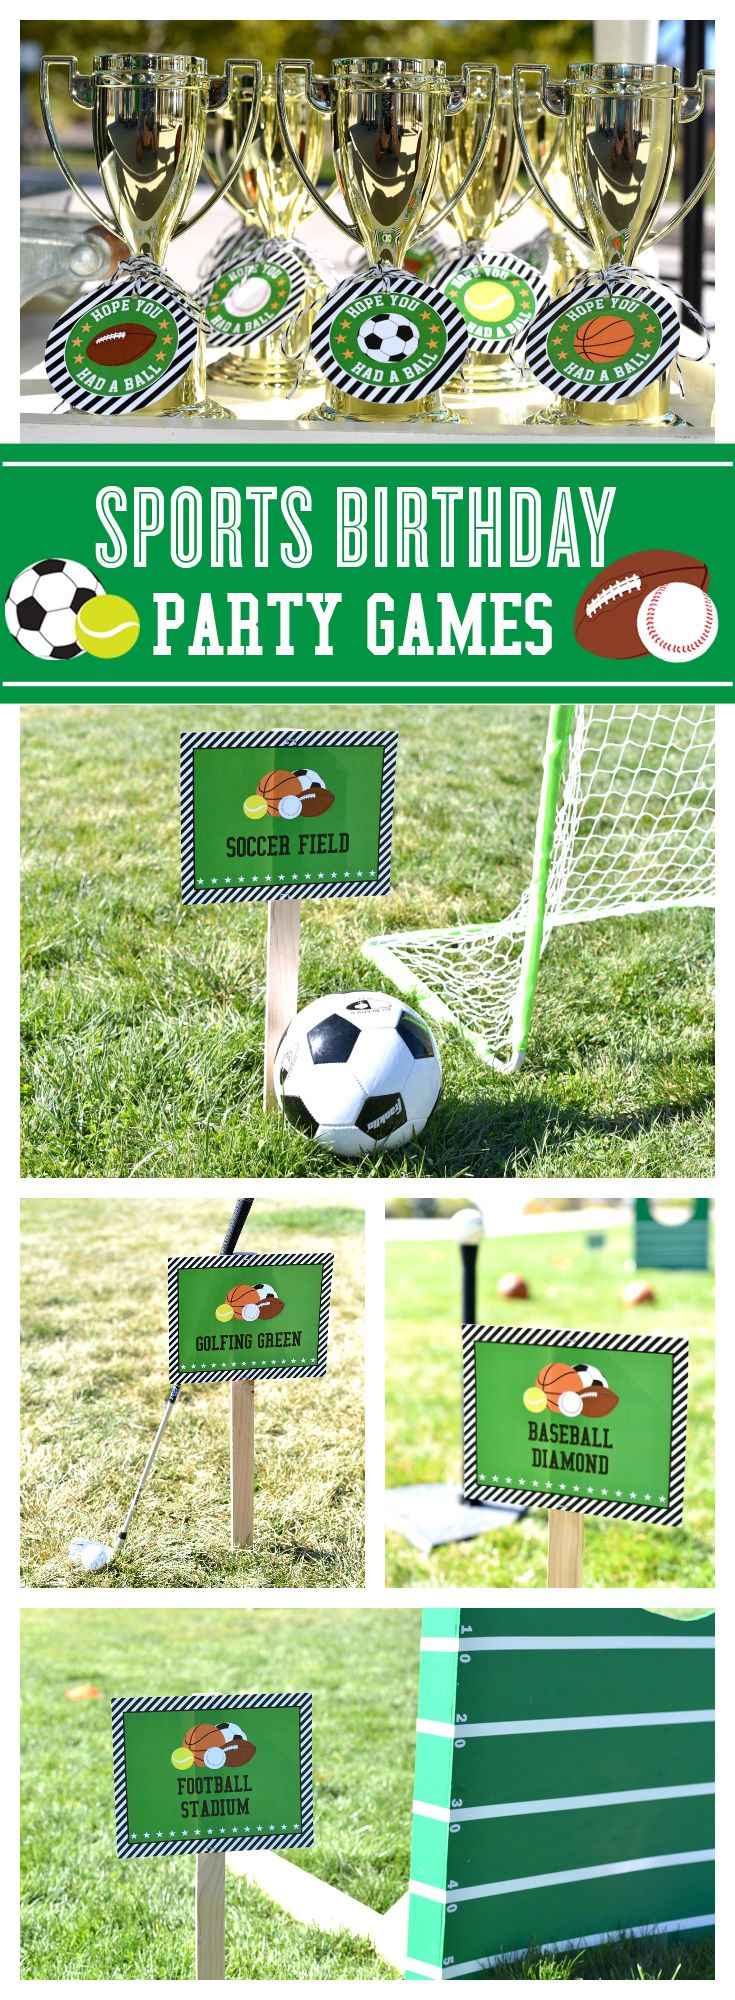 Get your game on! Sports birthday party games.